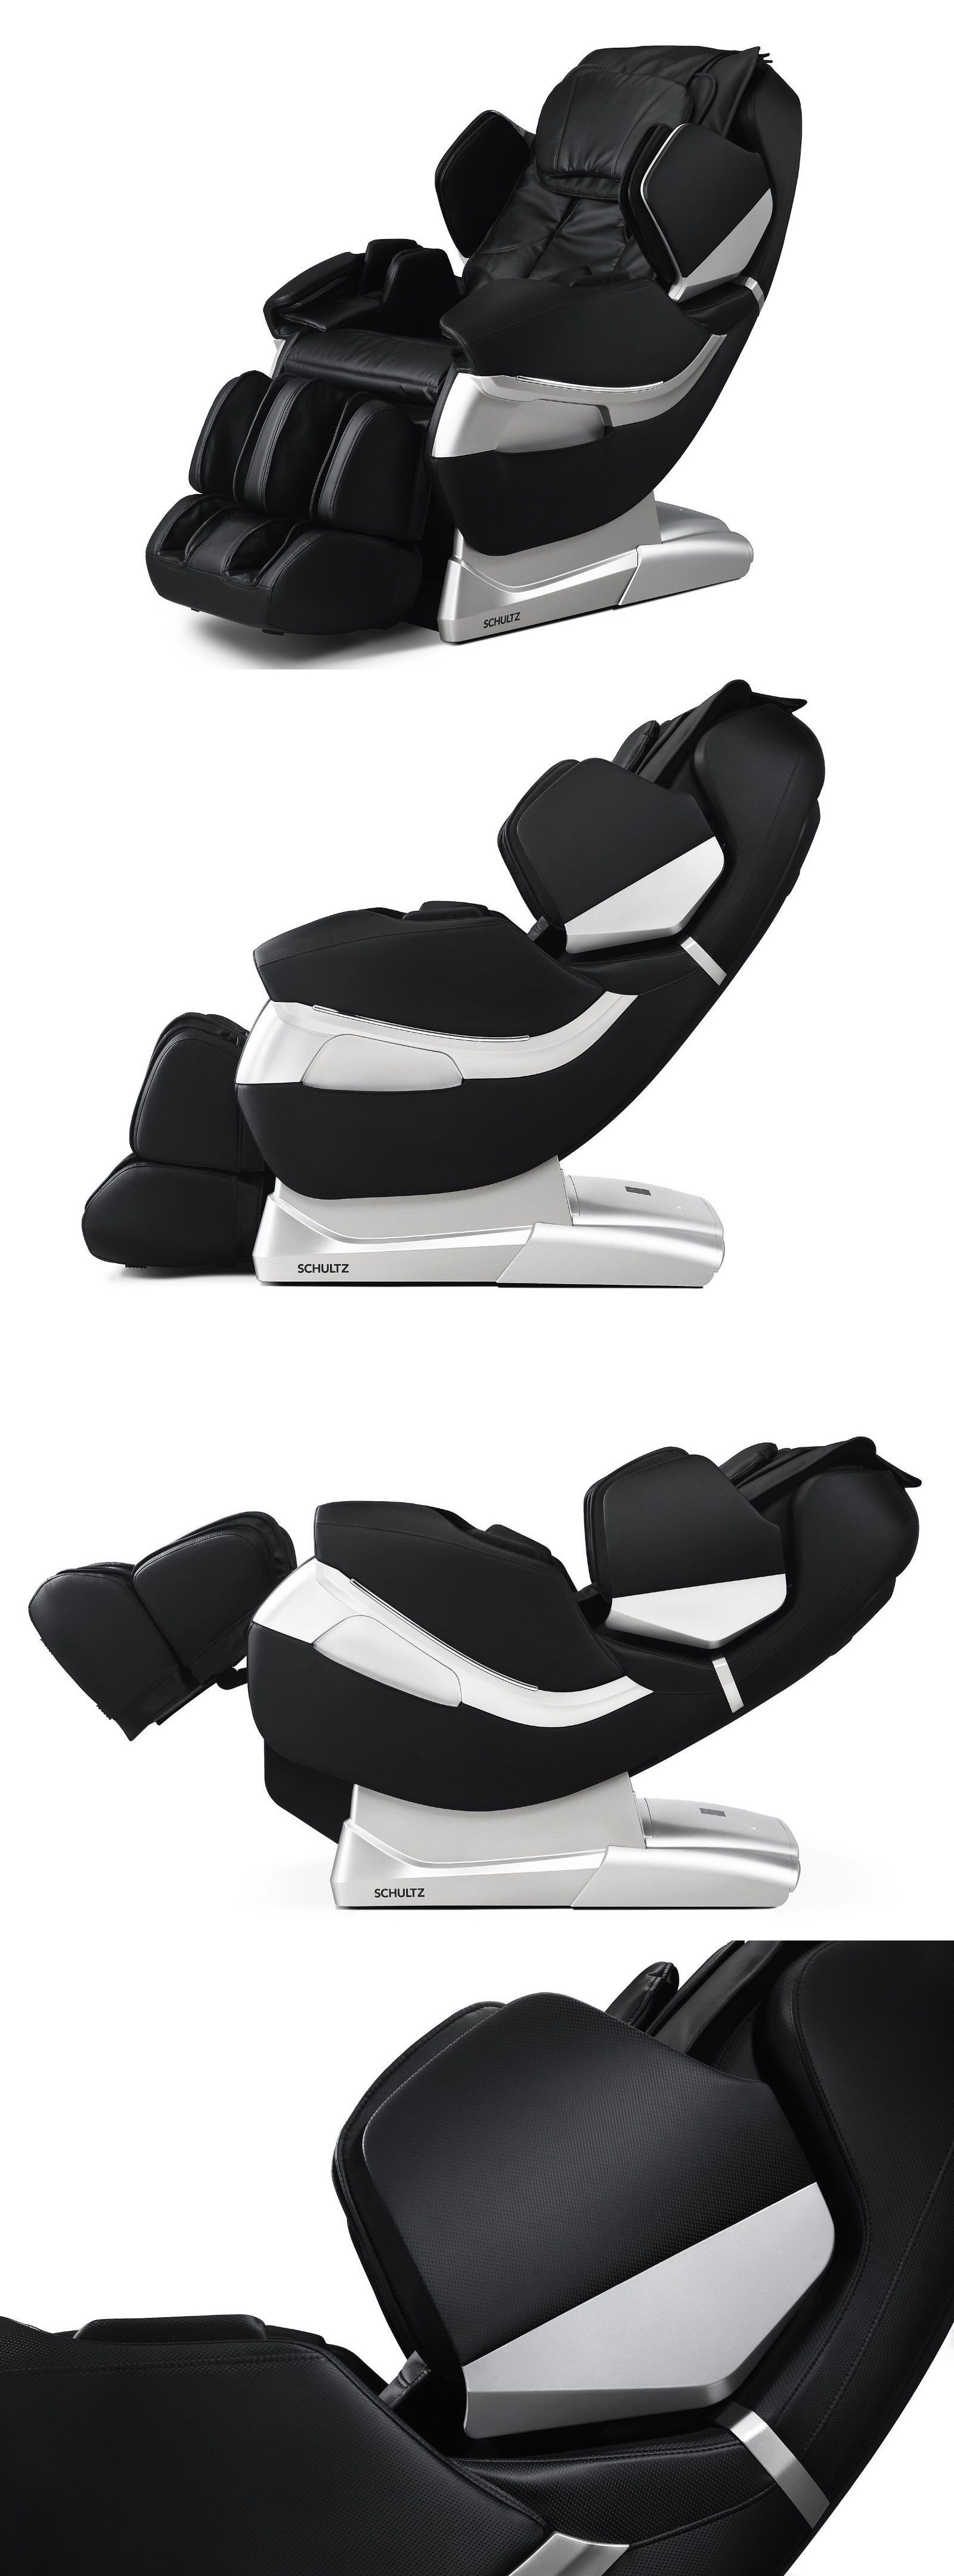 Electric Massage Chairs Schultz Zycrapulse Massage Lounge Chair